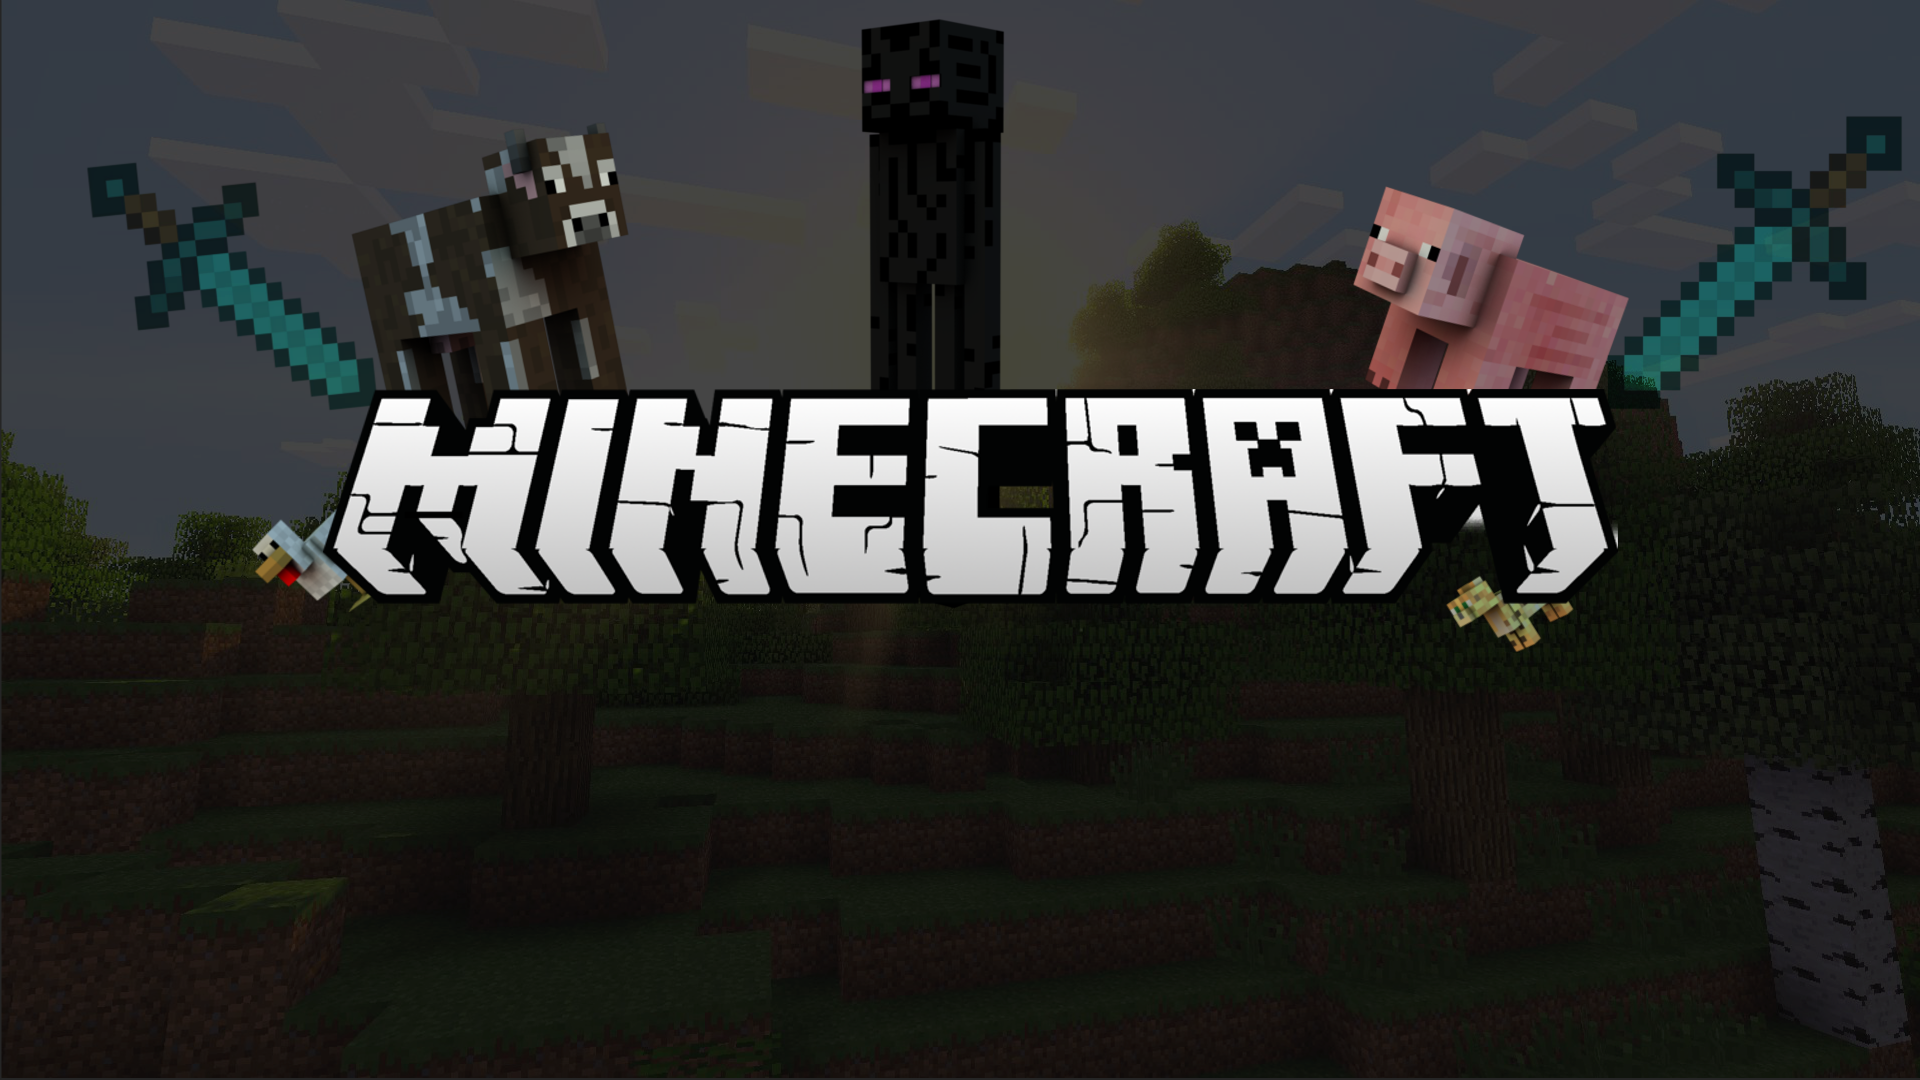 2048 X 1152 Minecraft Wallpapers: Minecraft 2048 Pixels Wide And